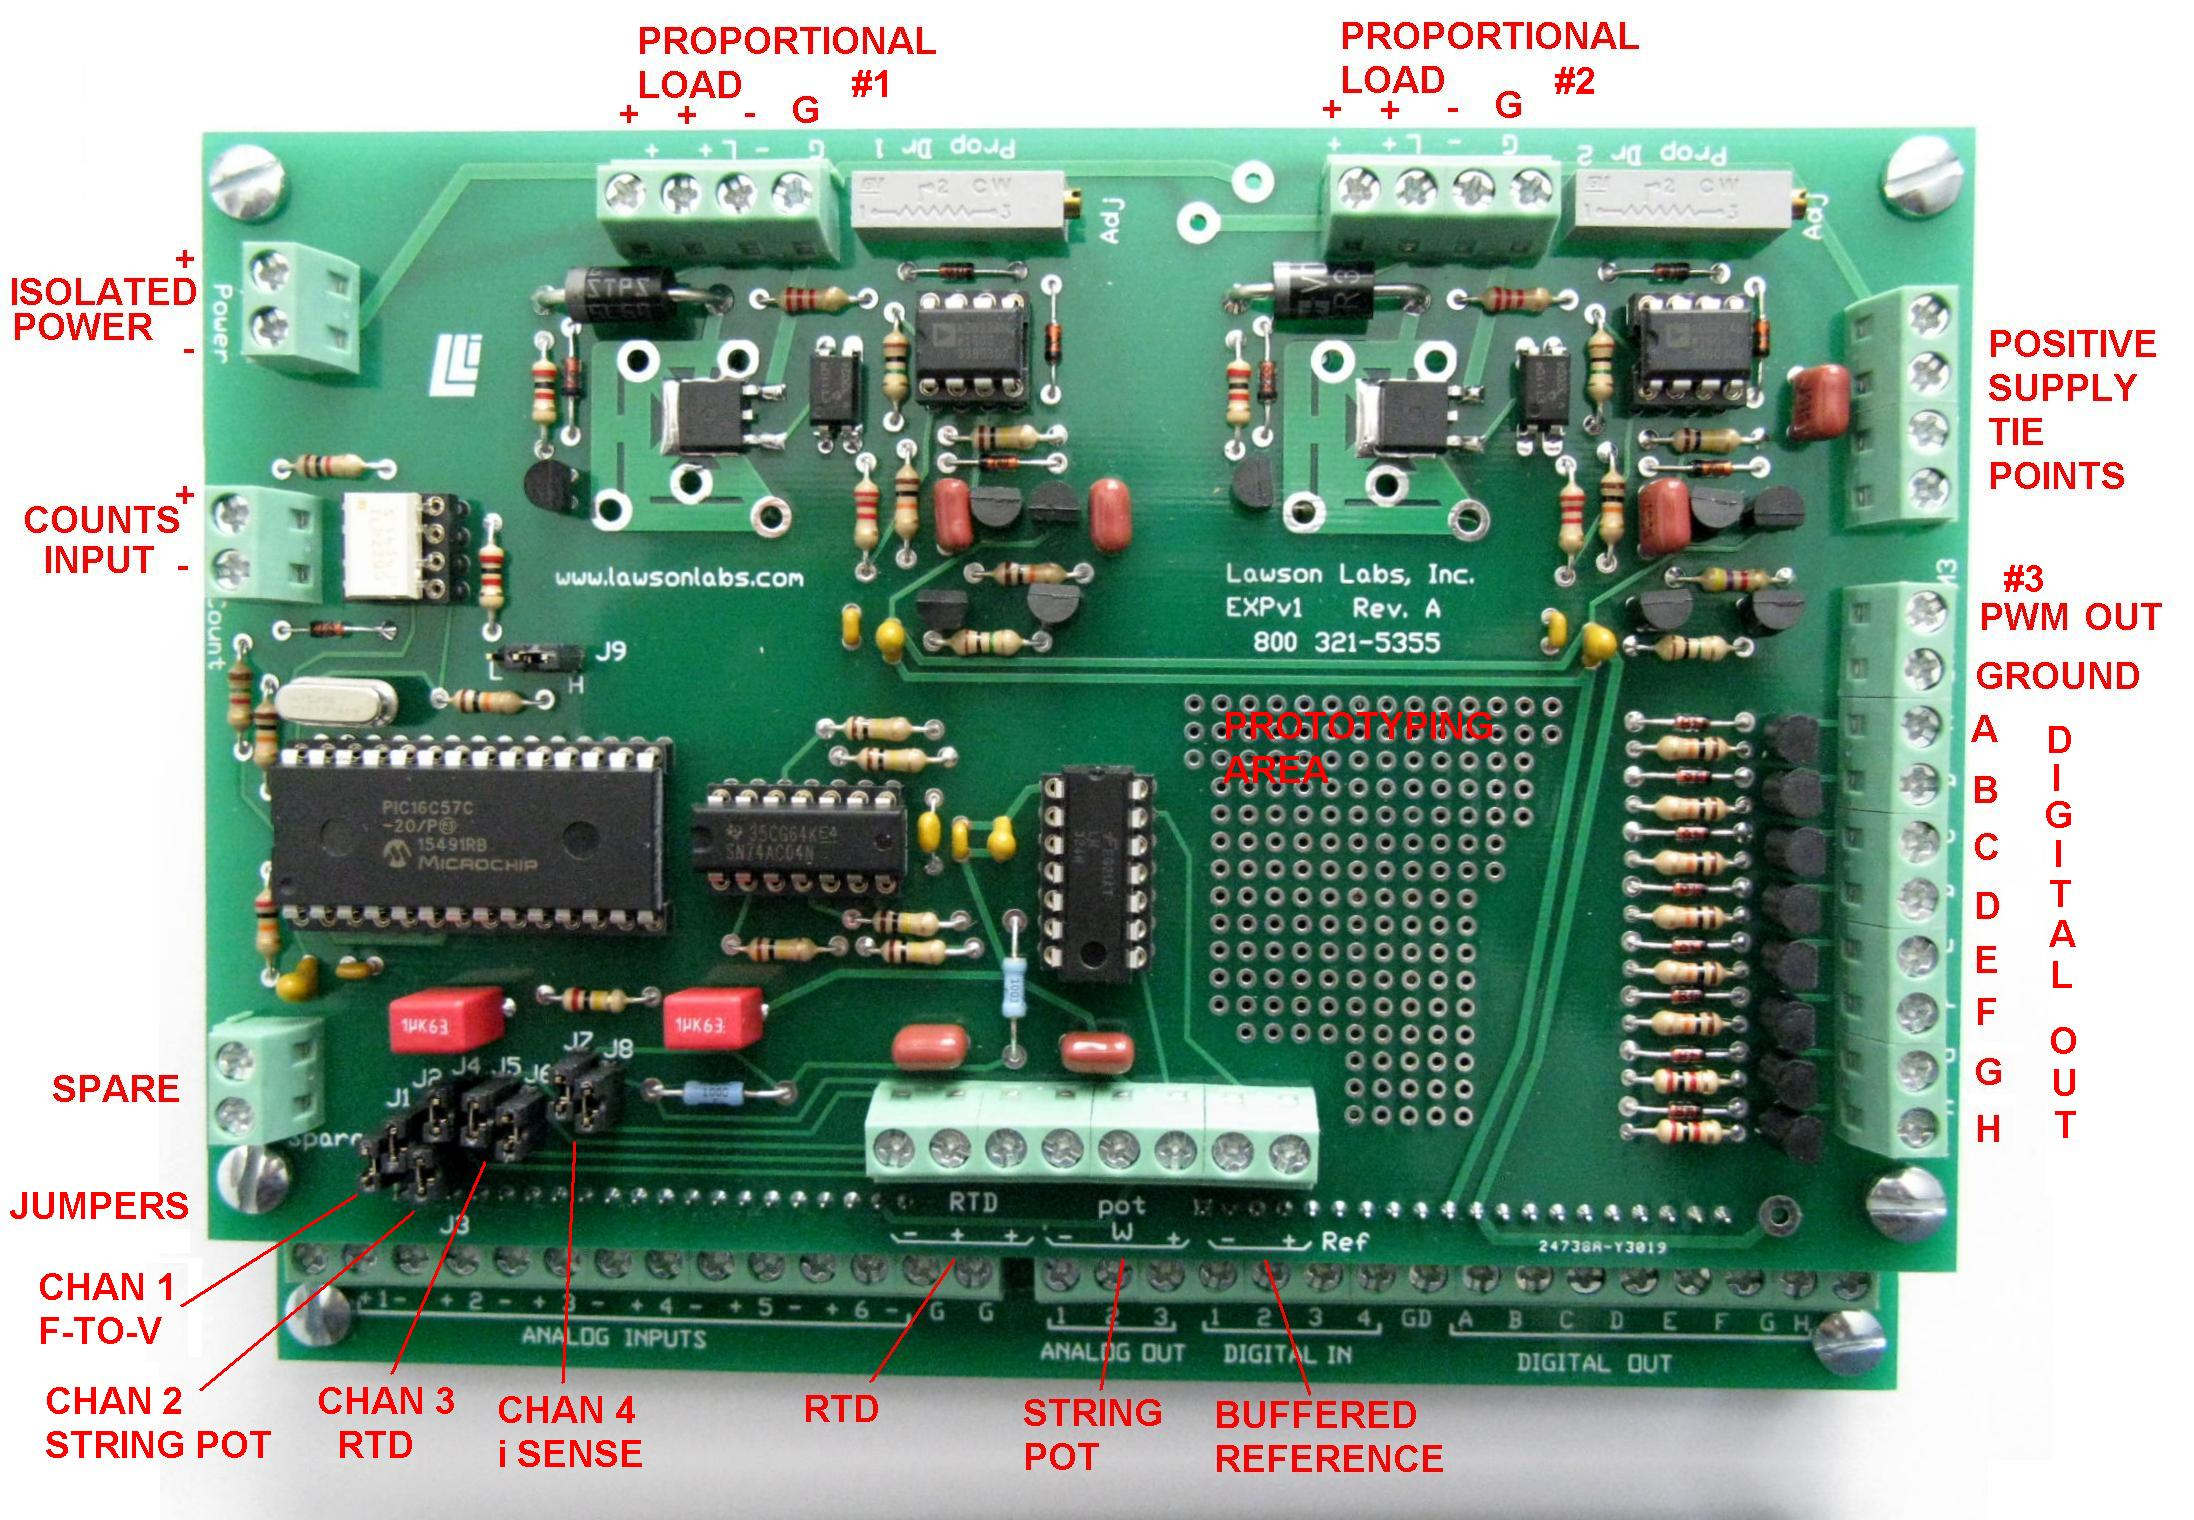 Model 302 Expv1 Stacking Process Control Expansion Board Labeled Motherboard Diagram Connection